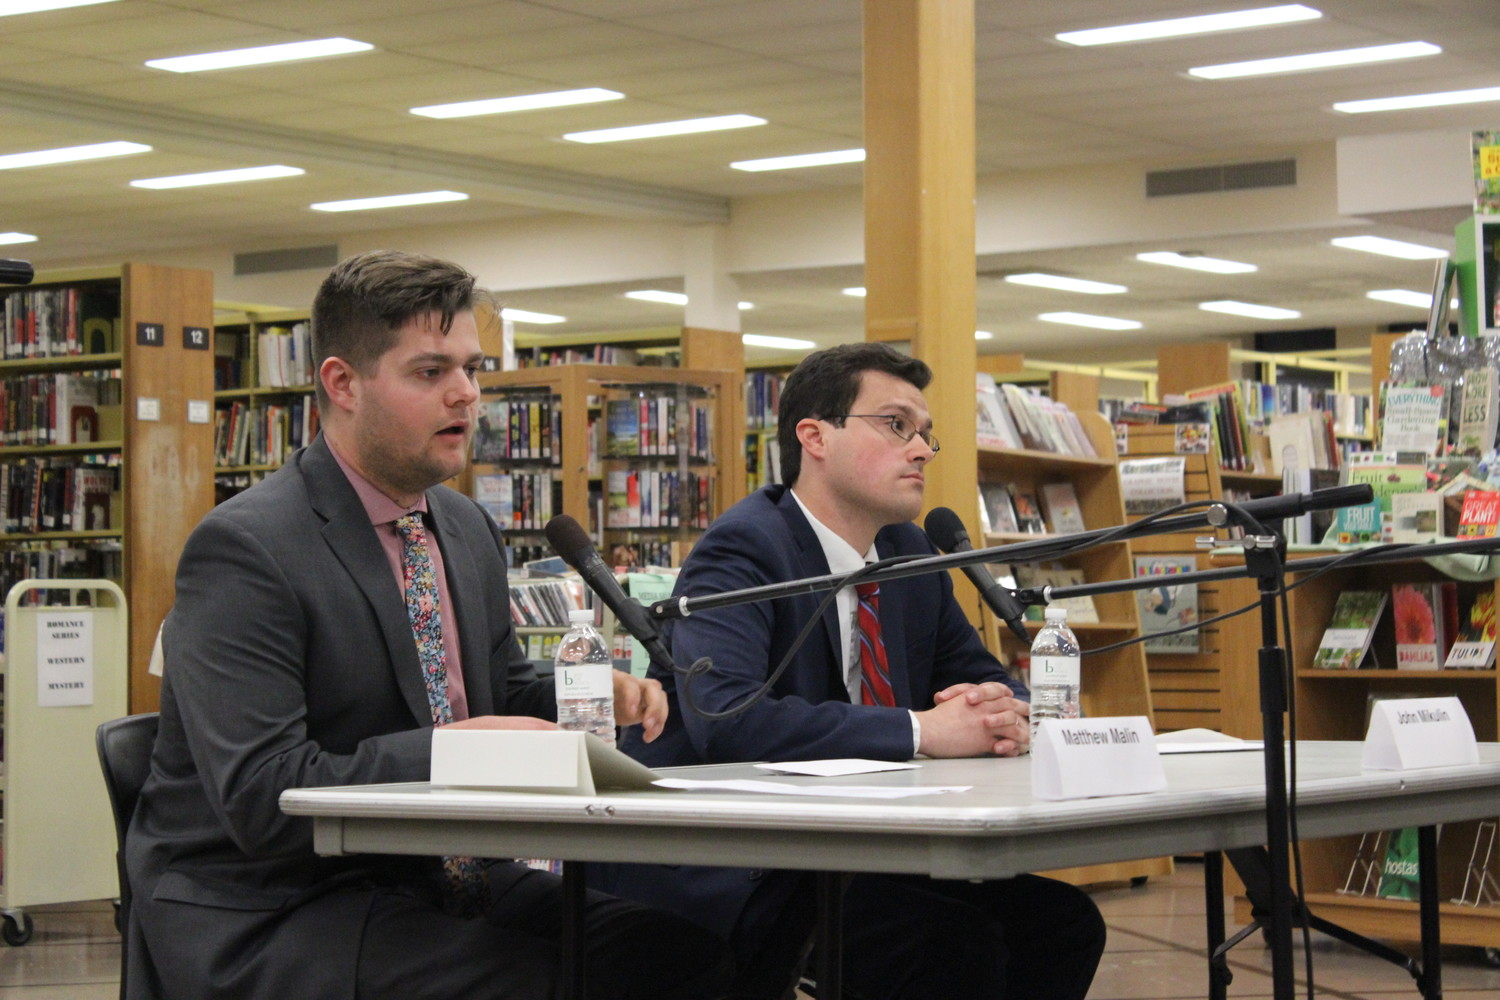 Matthew Malin, 25, of Seaford, left, and John Mikulin, 30, of Levittown, are the candidates in an April 24 special election to fill the seat in the State's Assembly 17th District. Both men addressed the concerns of district residents at a public forum held by the League of Women Voters at the East Meadow Public Library on April 12.